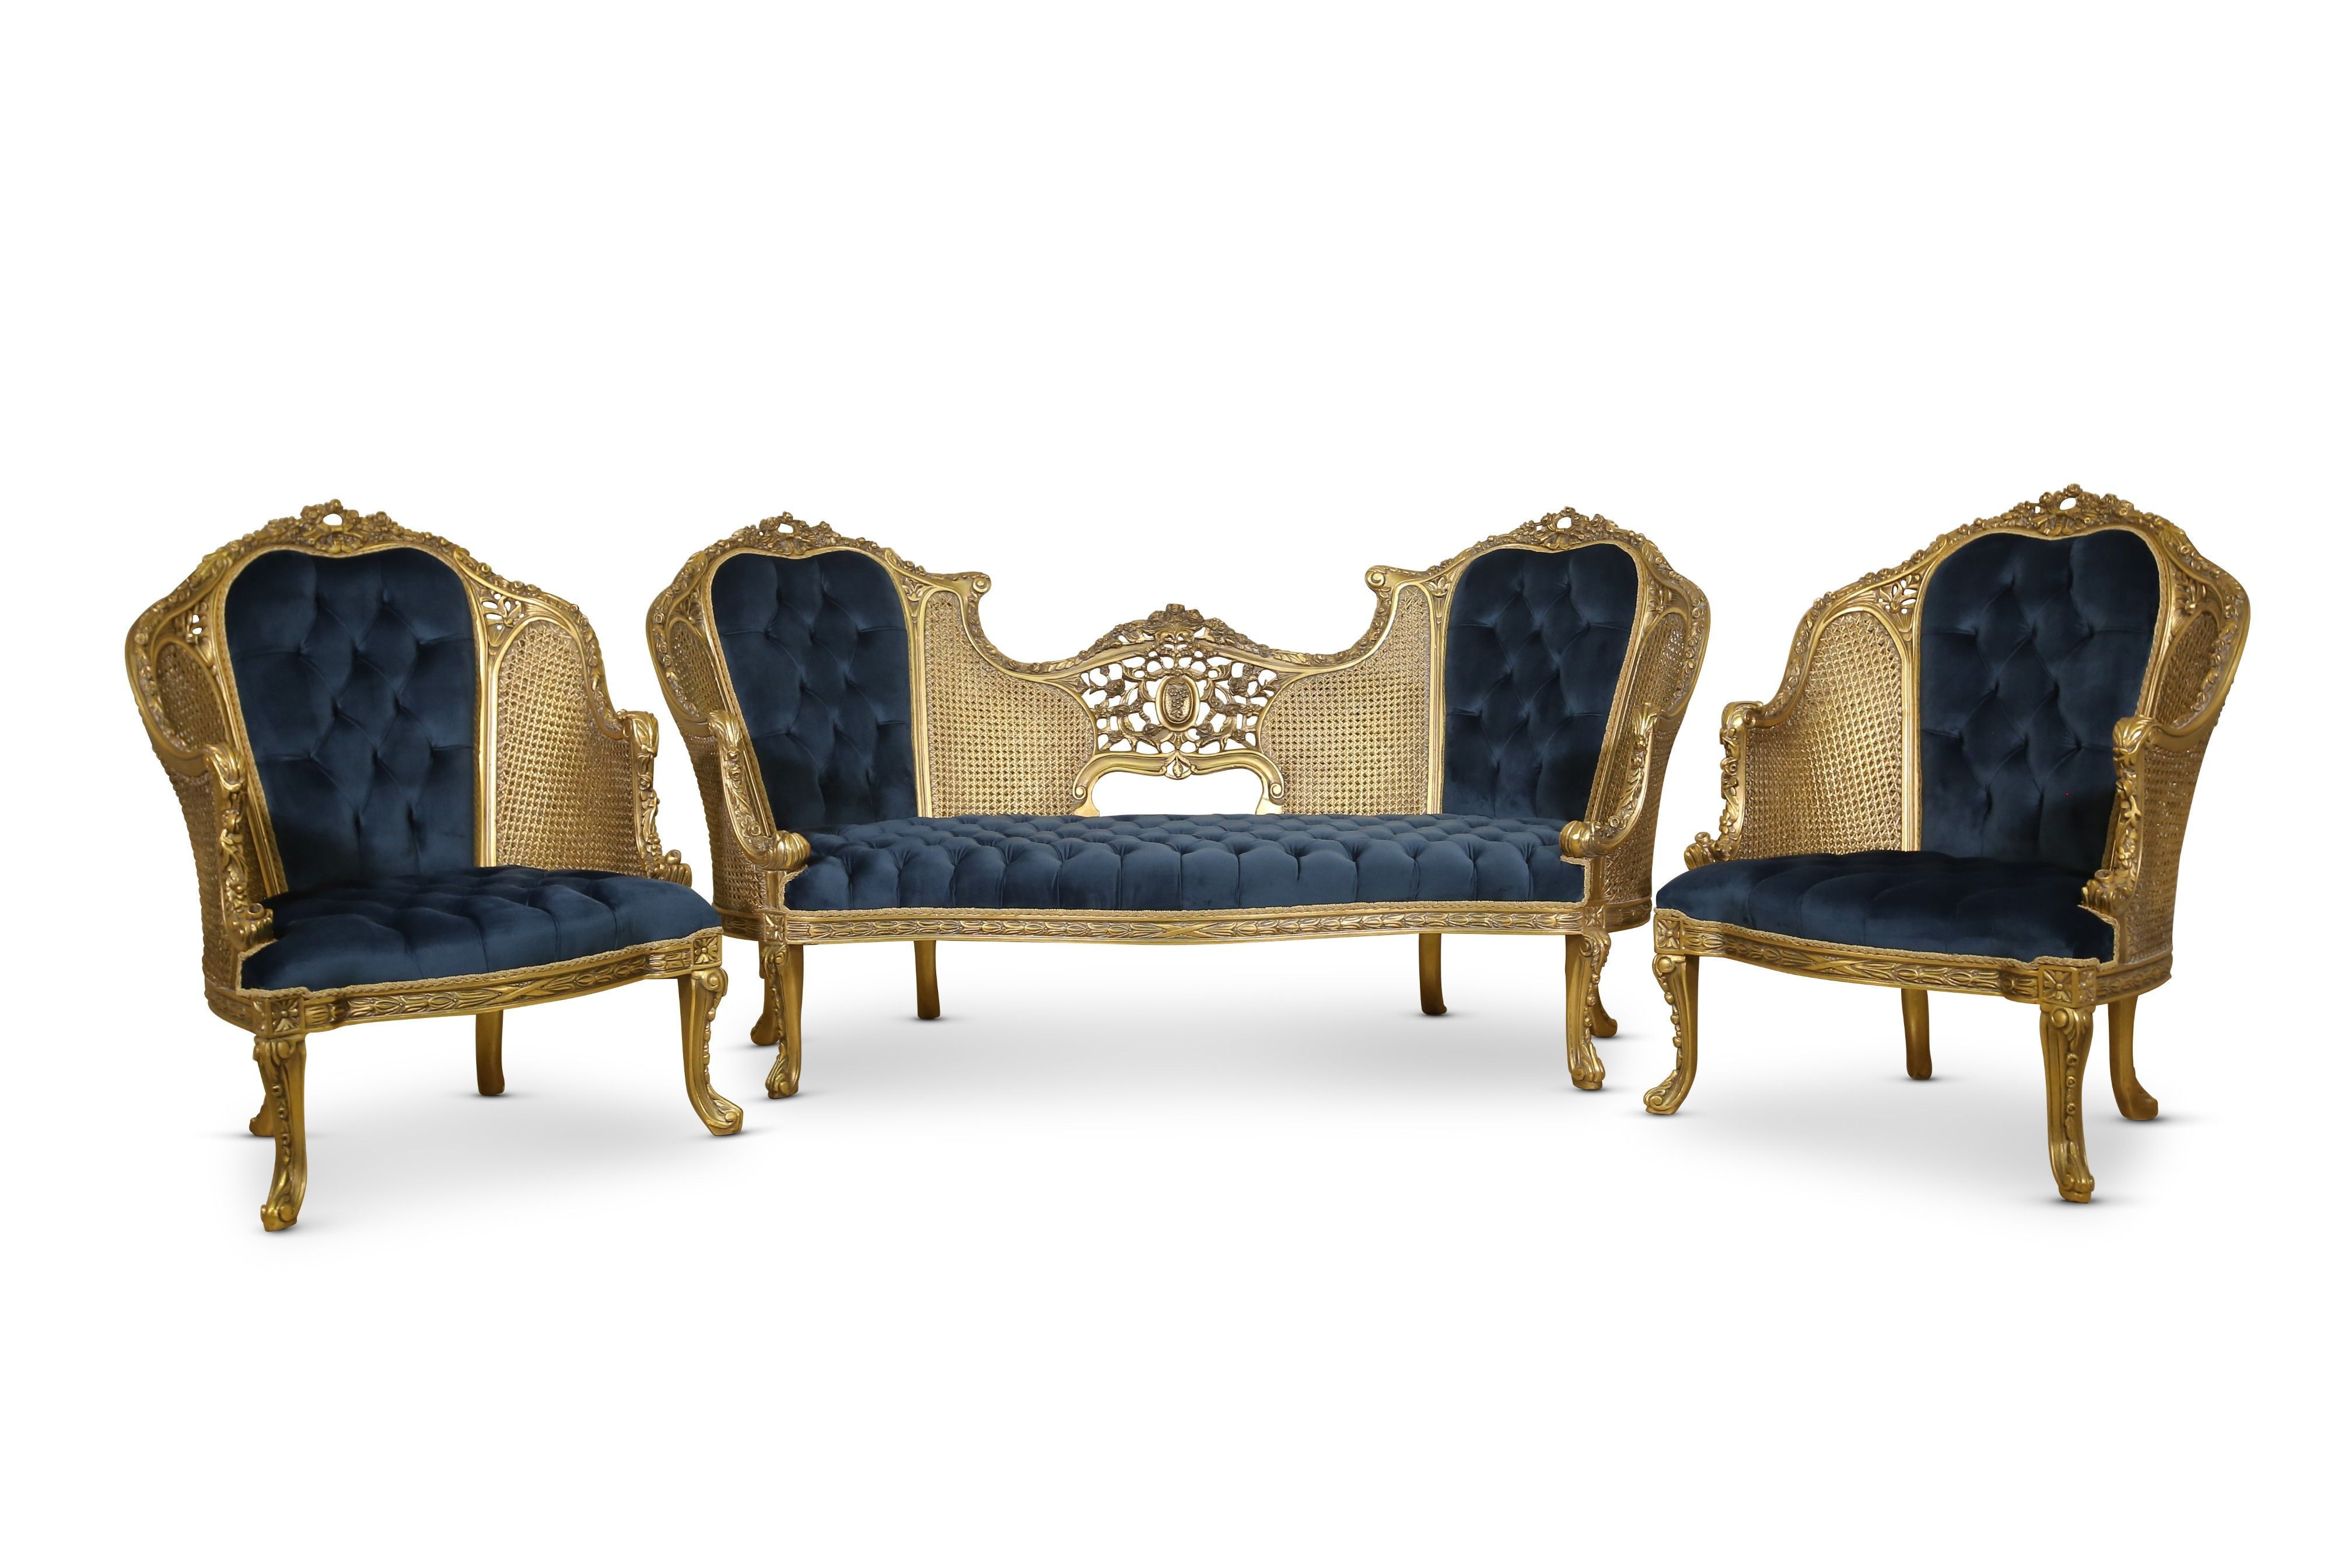 Made To Order / Pied d'alouette, French Style Cane Art , Gold Leaf , Tufted Blue Velvet, Living Room Set